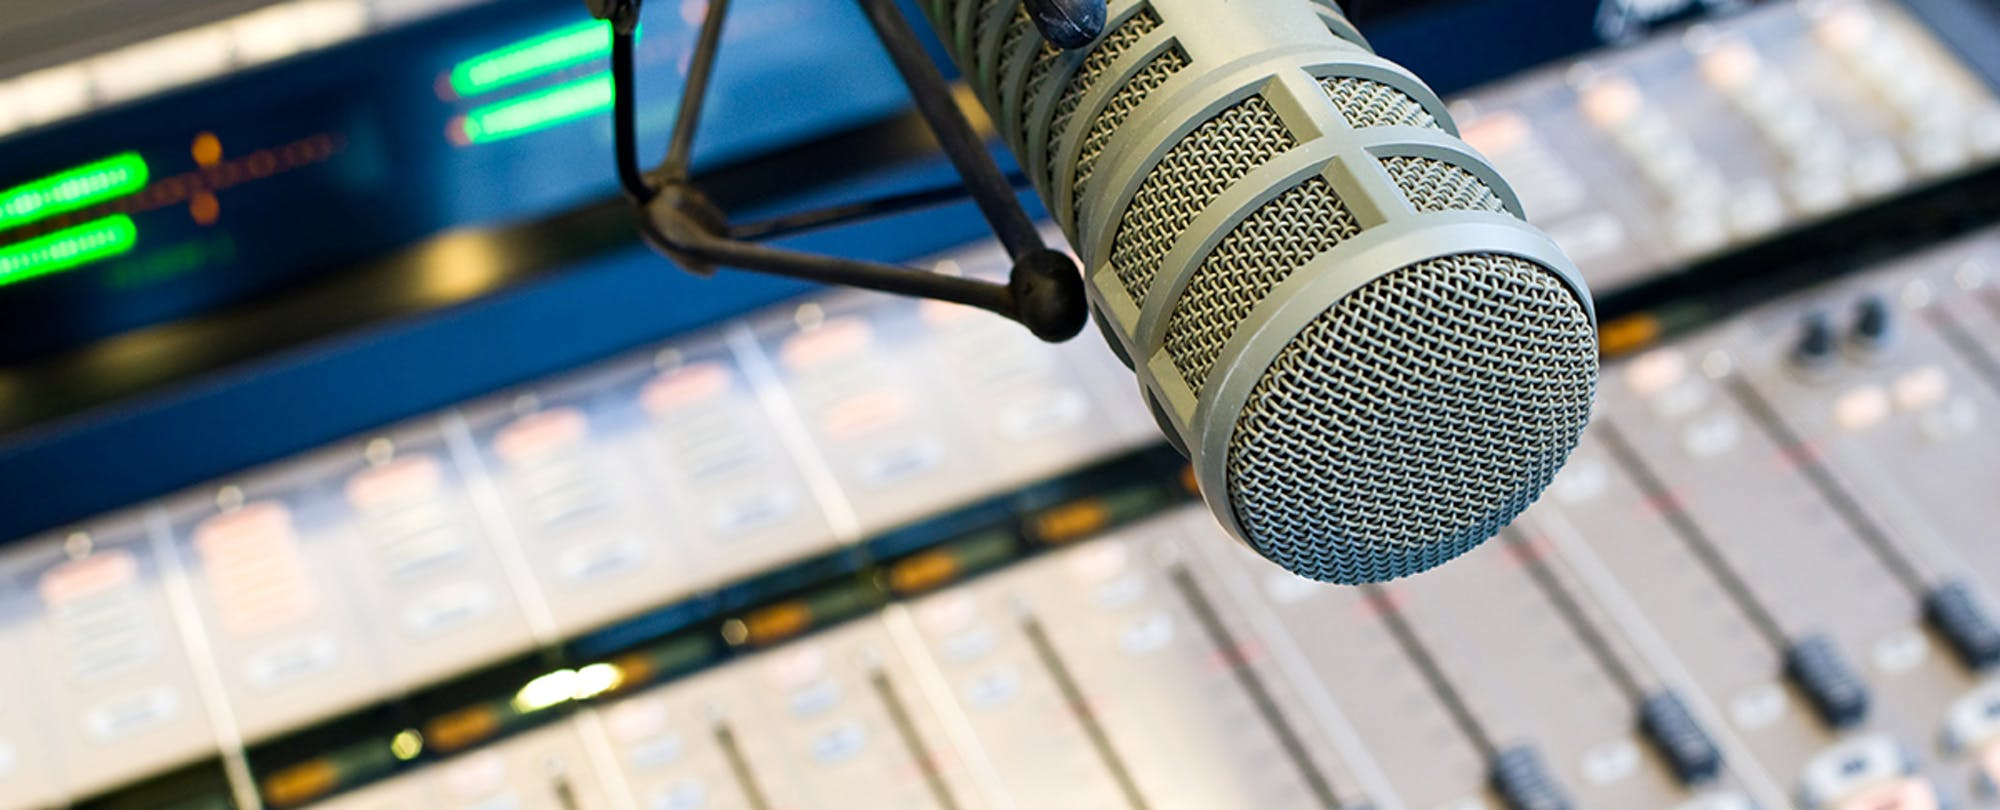 ​On-Air EdTech: How Audio Journalism Is Helping Students Build Digital Literacy